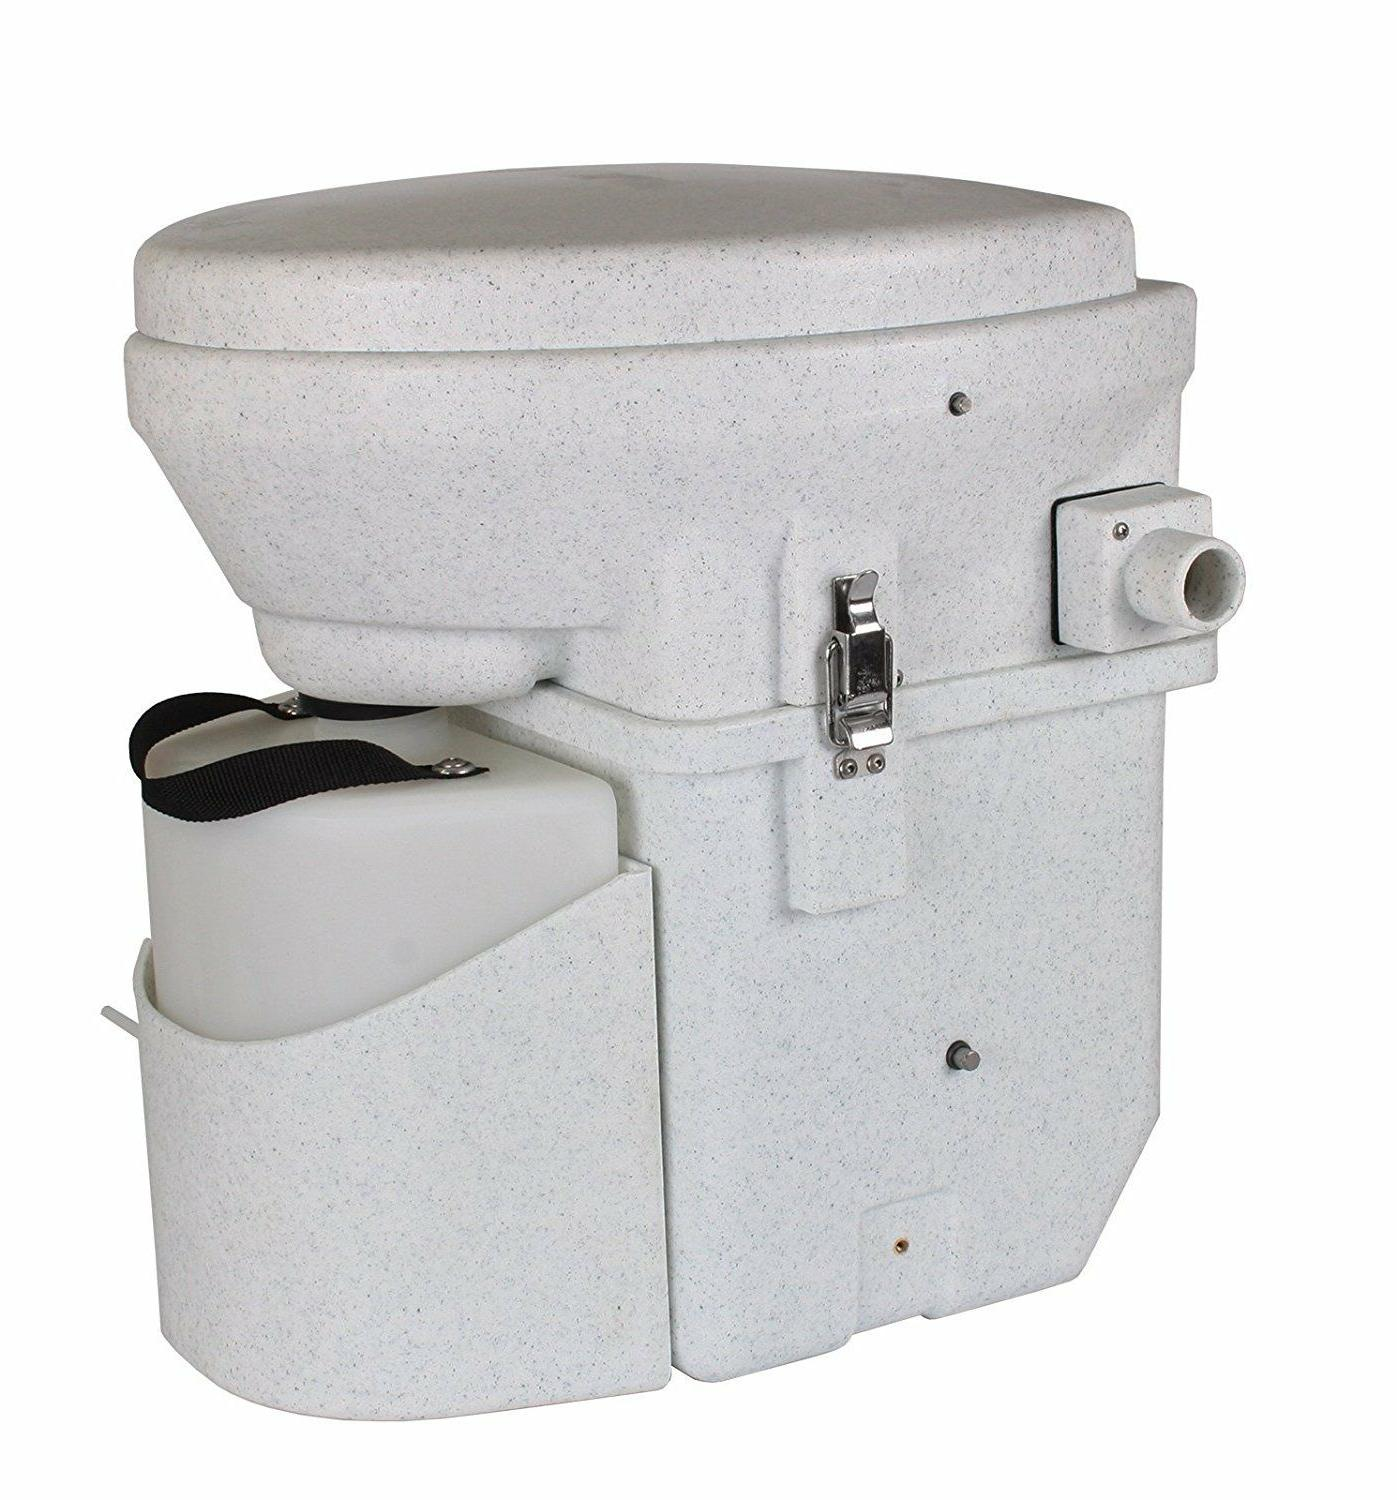 Nature's Self Contained Composting Toilet with Close Quarters